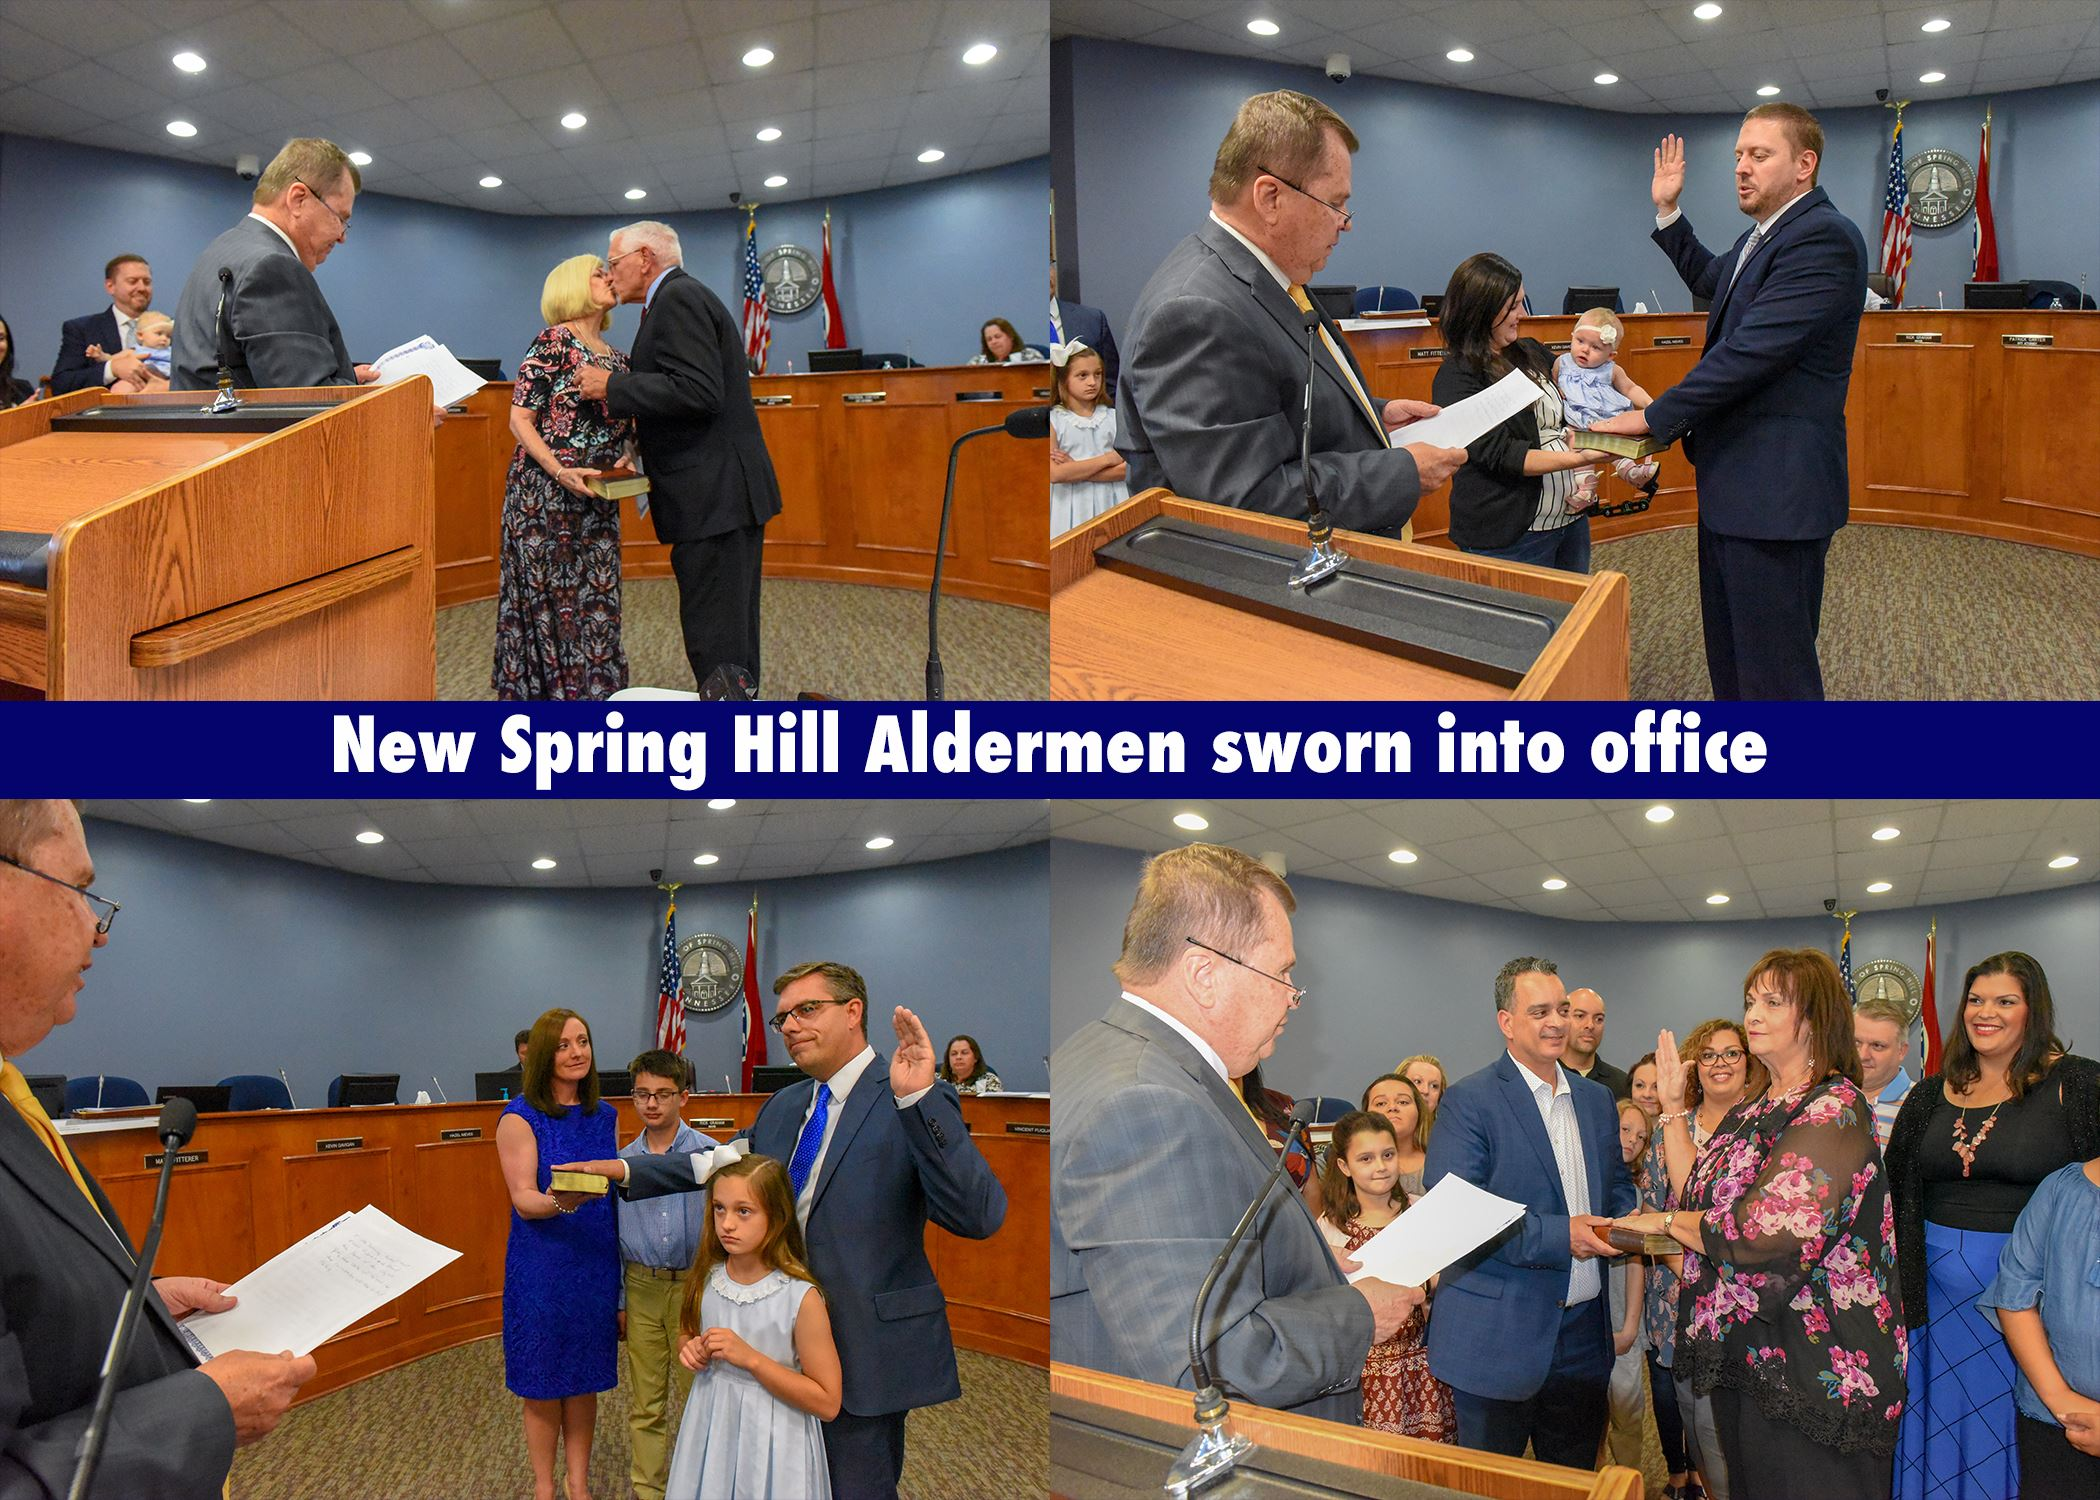 Four newly elected Aldermen were sworn into office on May 6, 2019